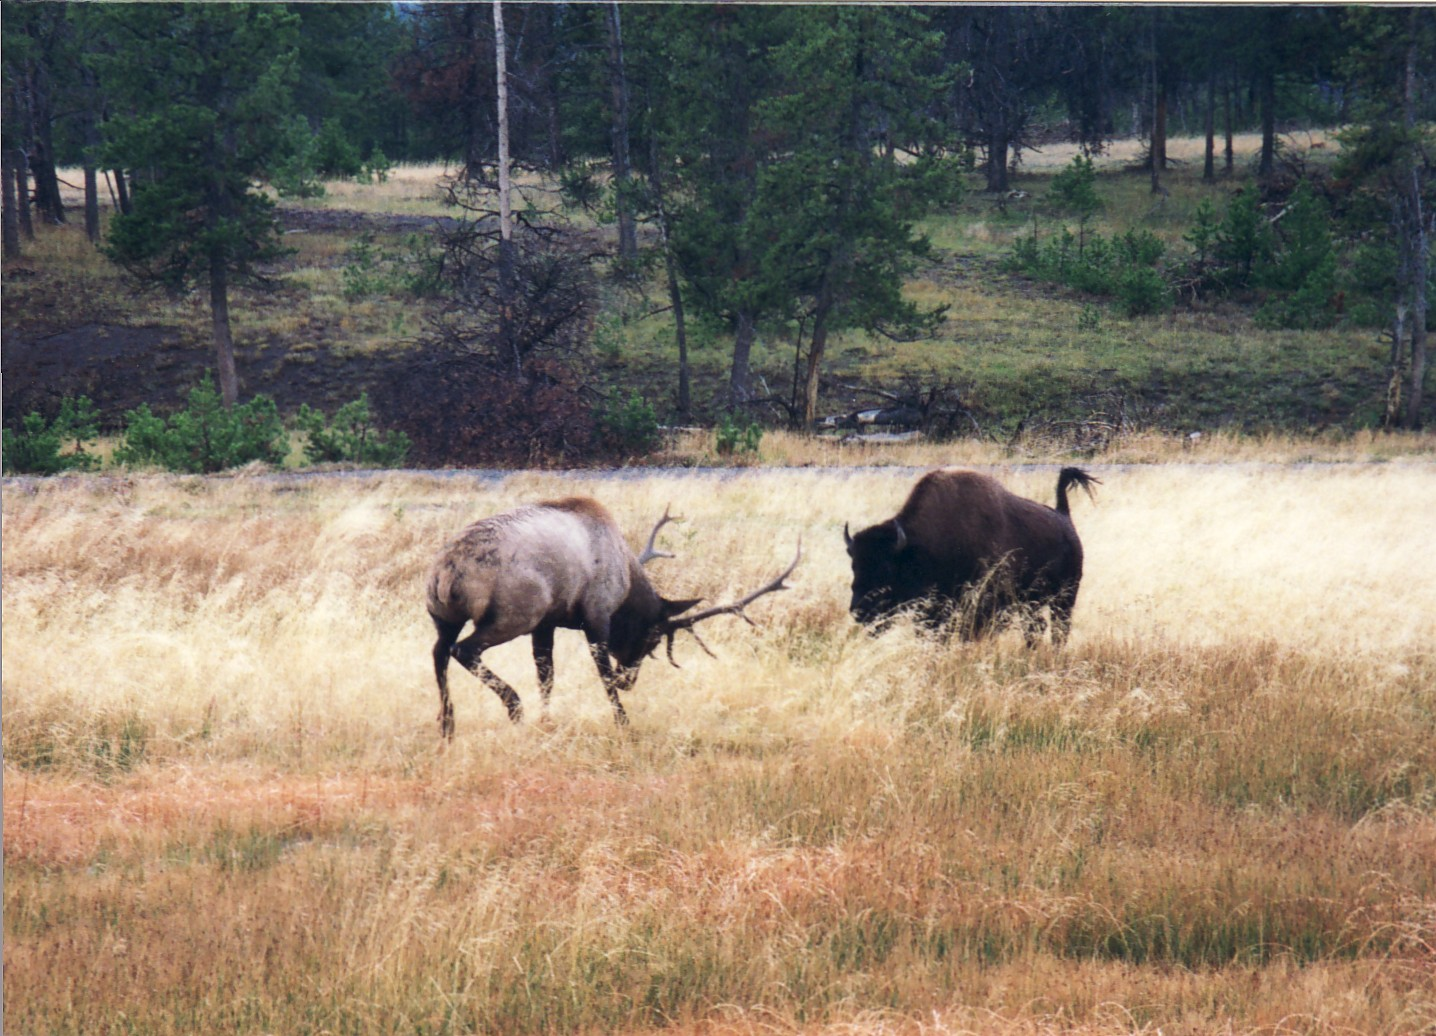 Elk - Wiki - EveripediaElk - 웹